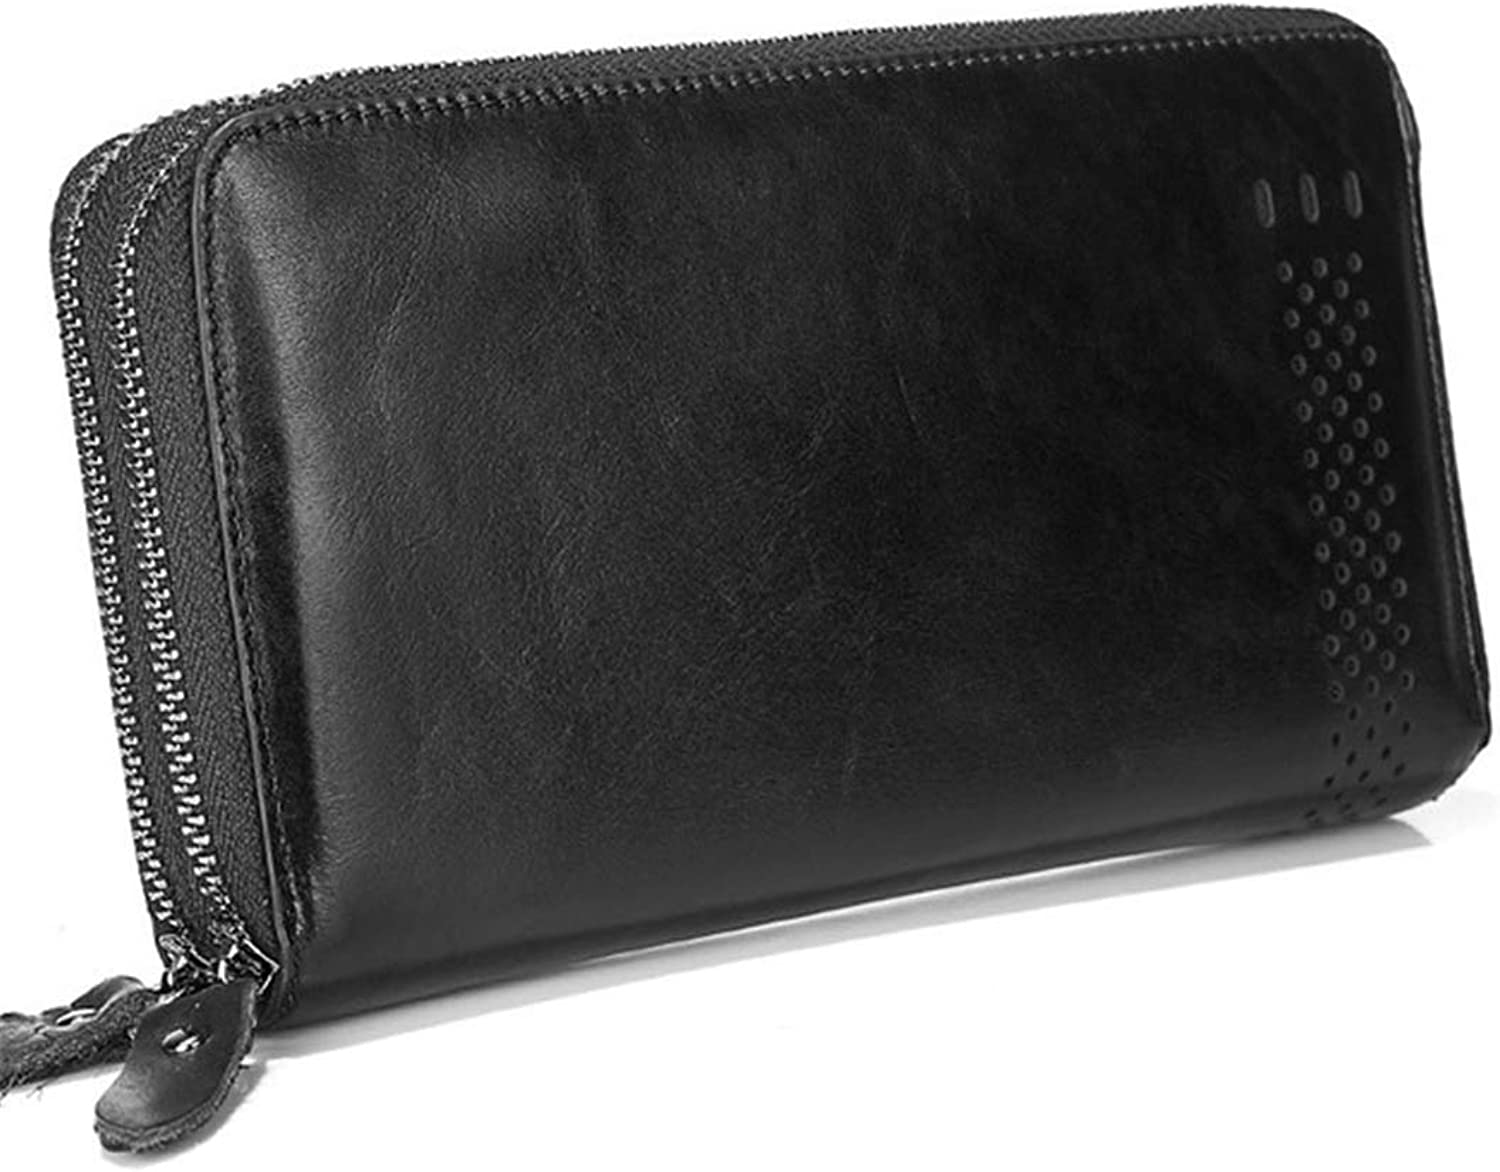 Leather Men's Wallet Long Wallet Retro Wallet Double Zipper Large Capacity